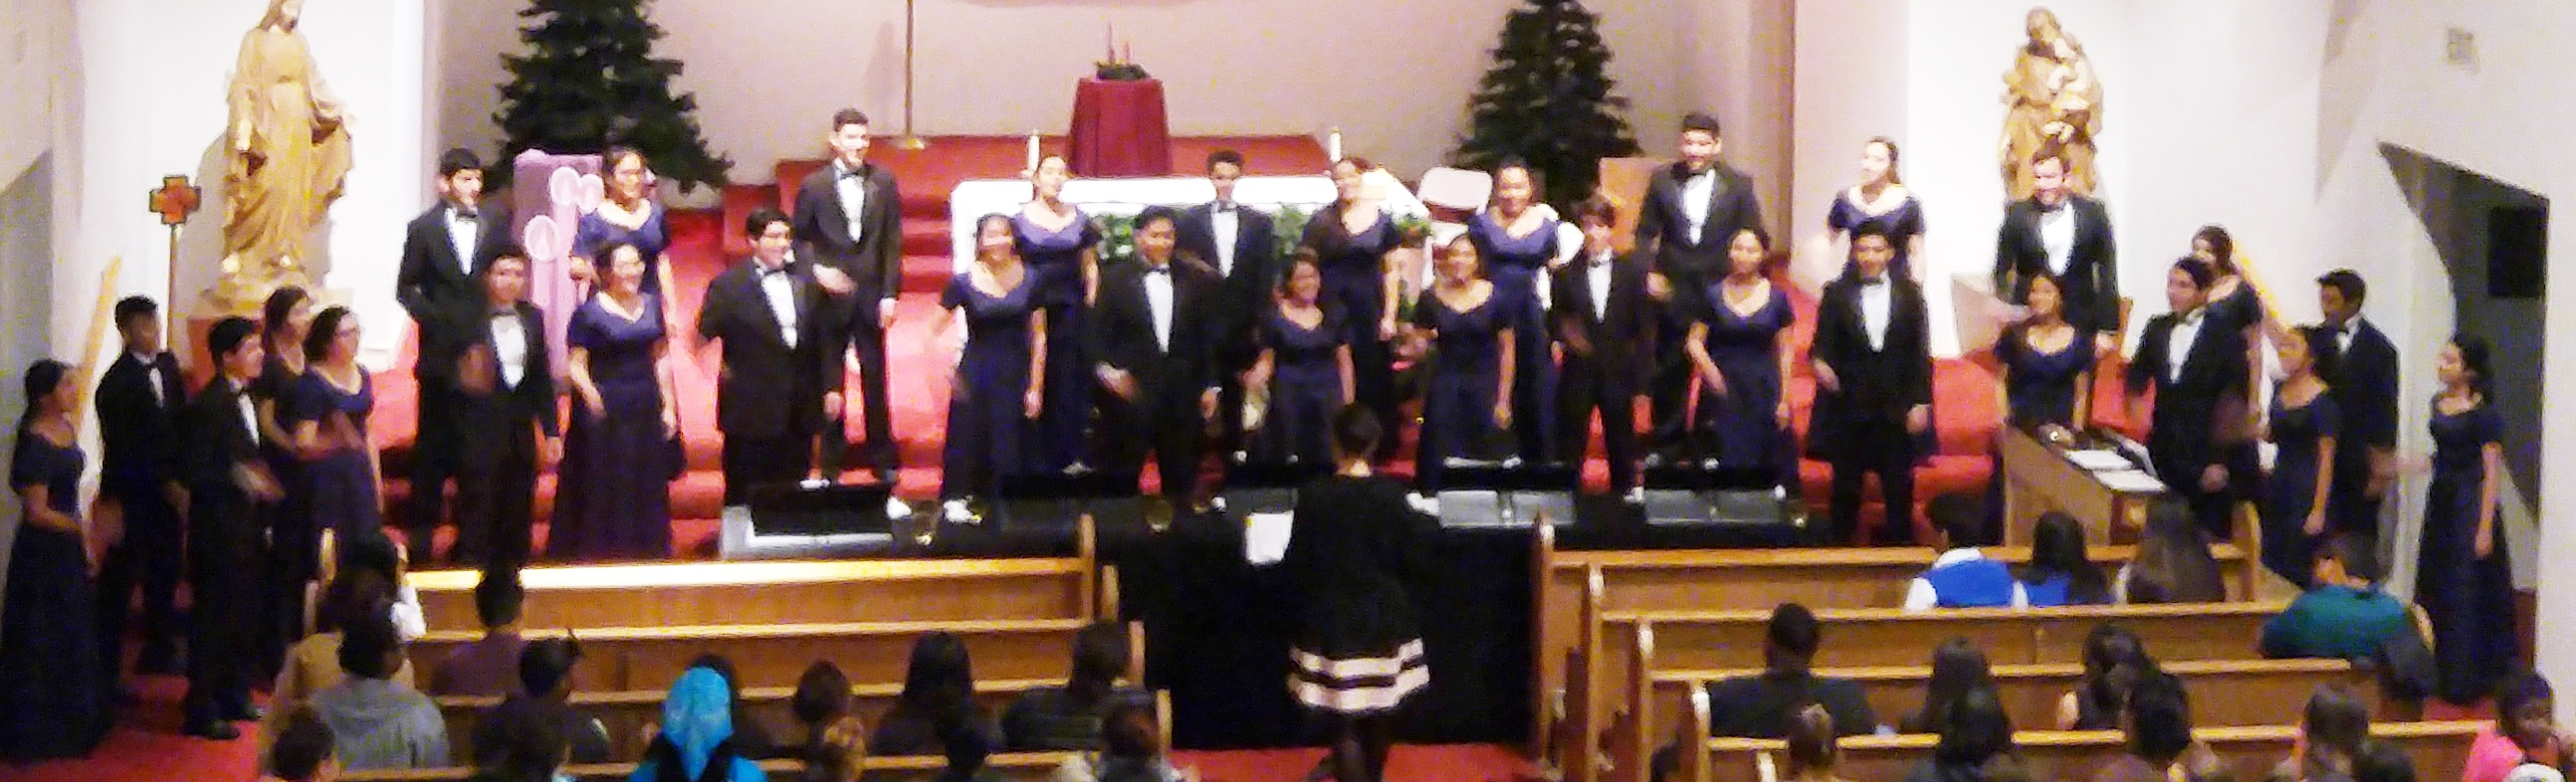 Bishop Amat Choir (1).jpg